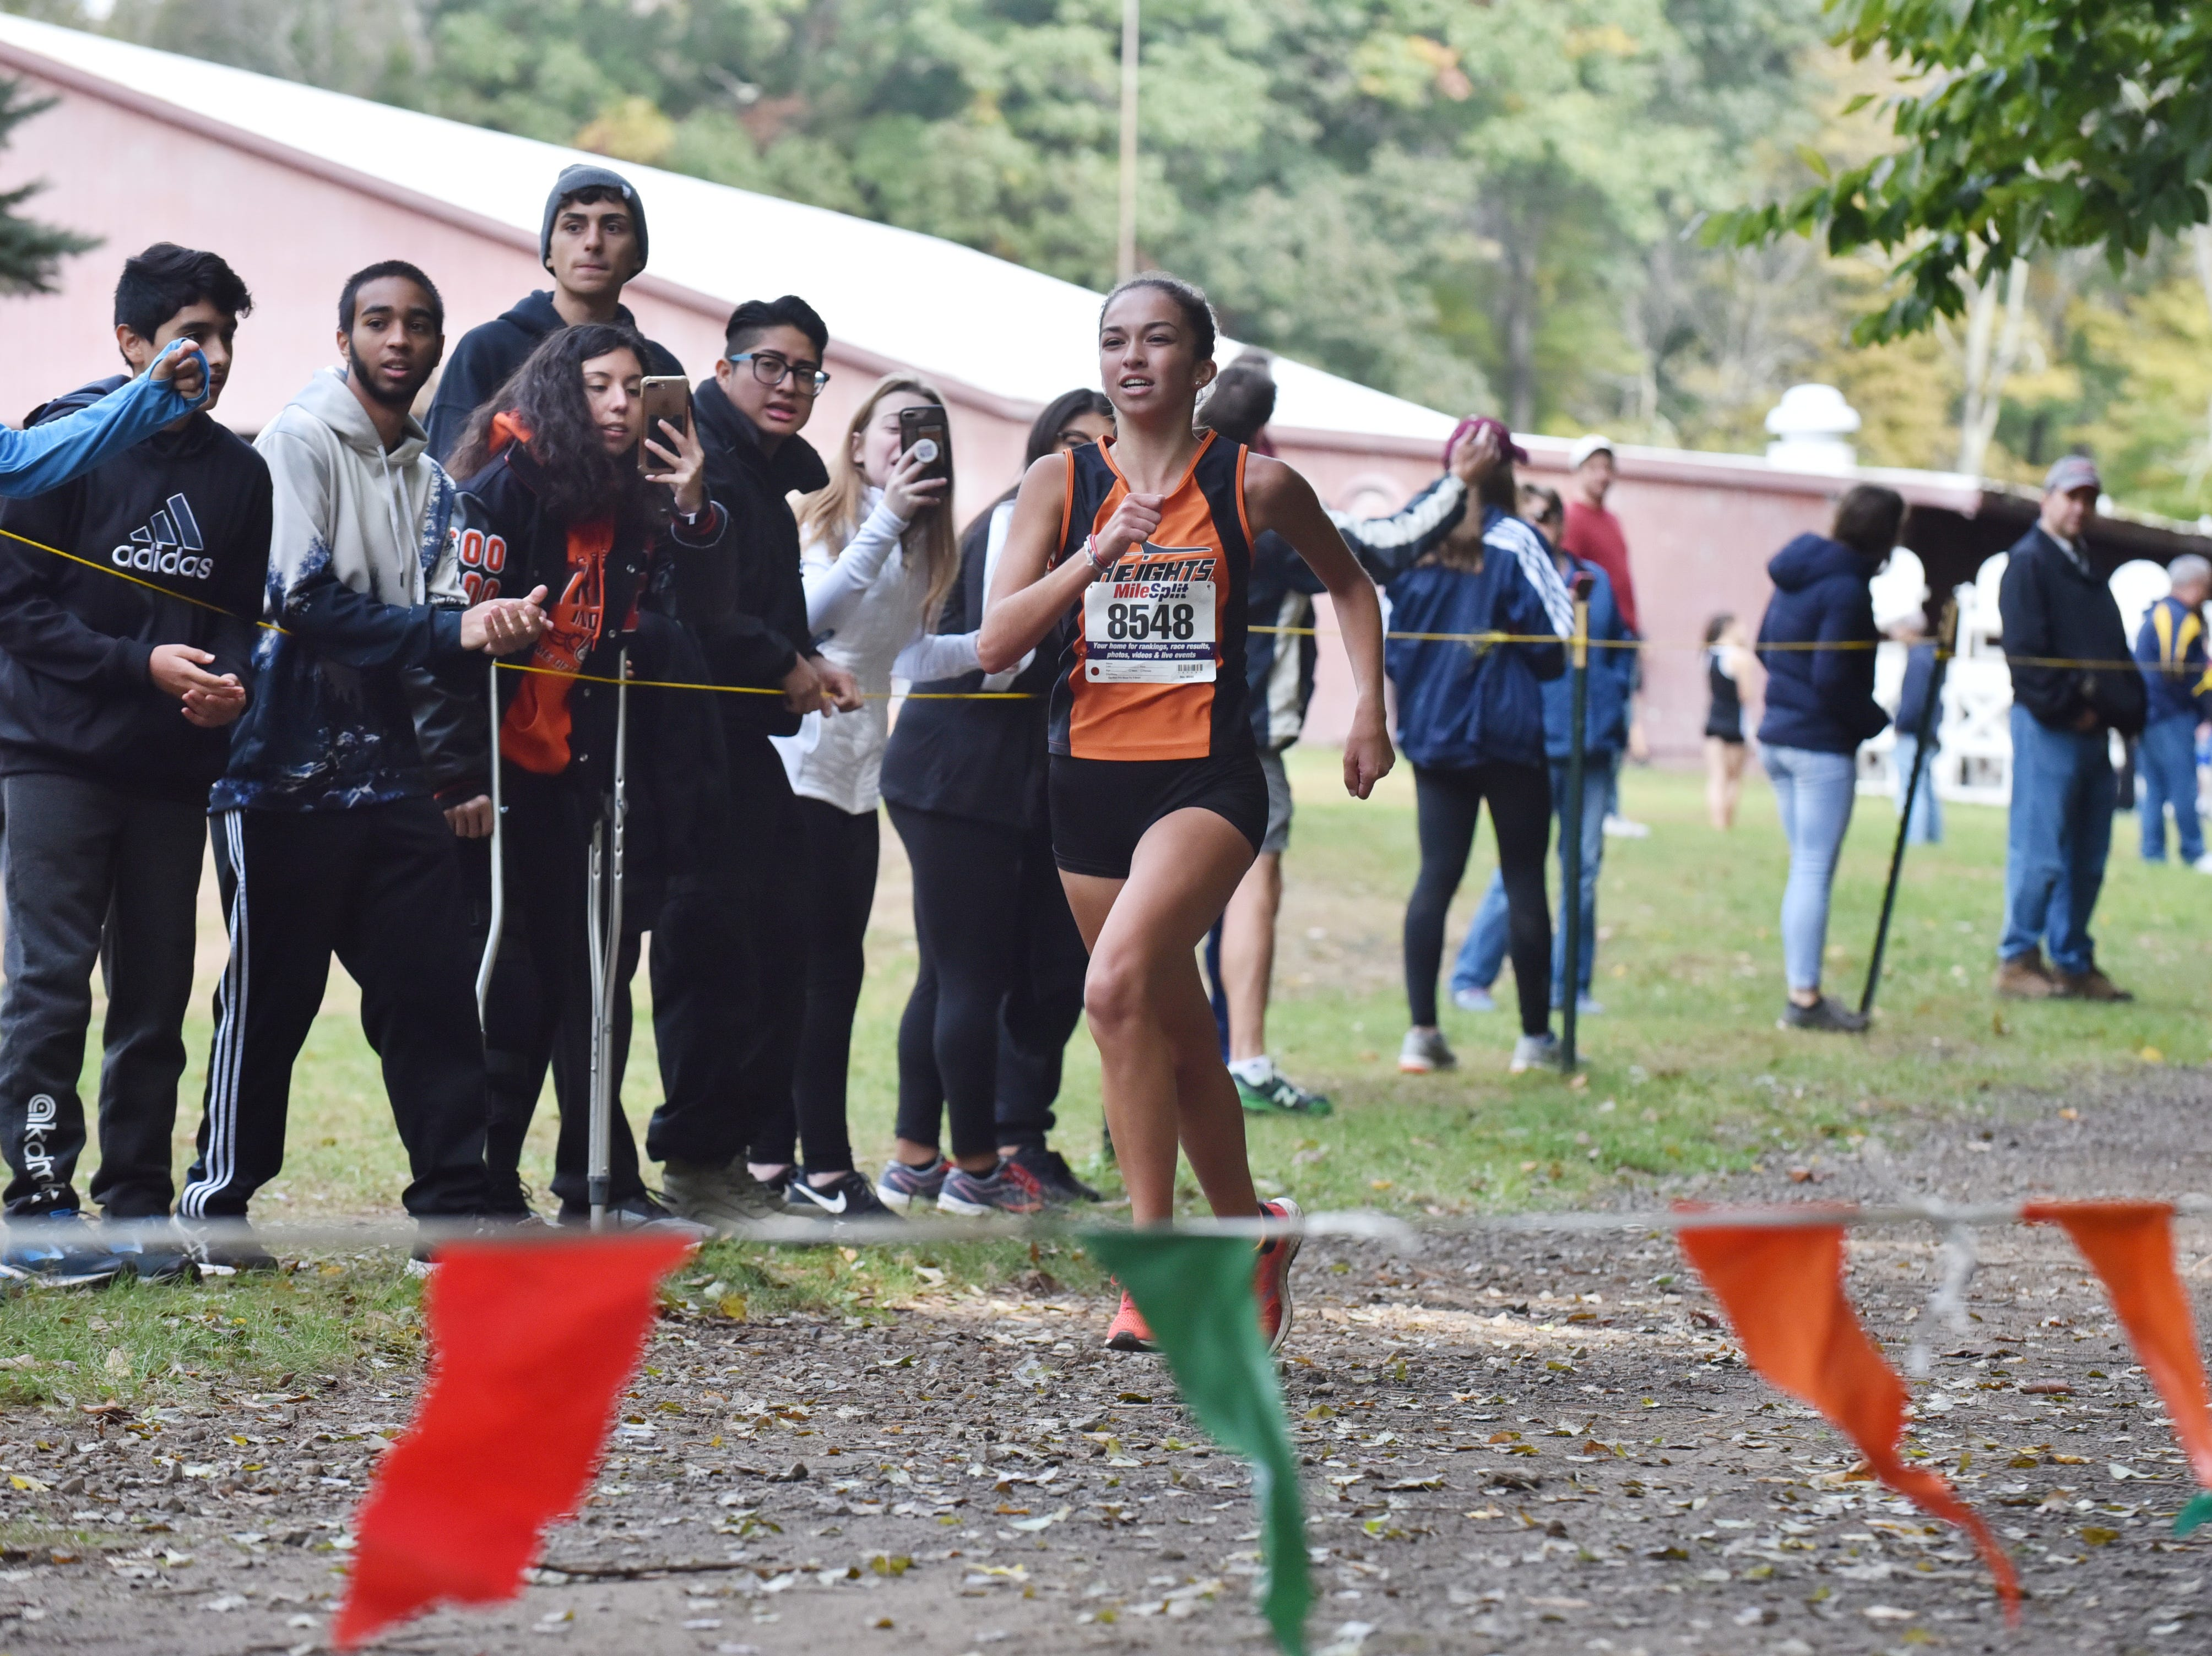 Shannon Artuso of Hasbrouck Heights wins 1st in Group D at the Bergen County Cross Country Championships.